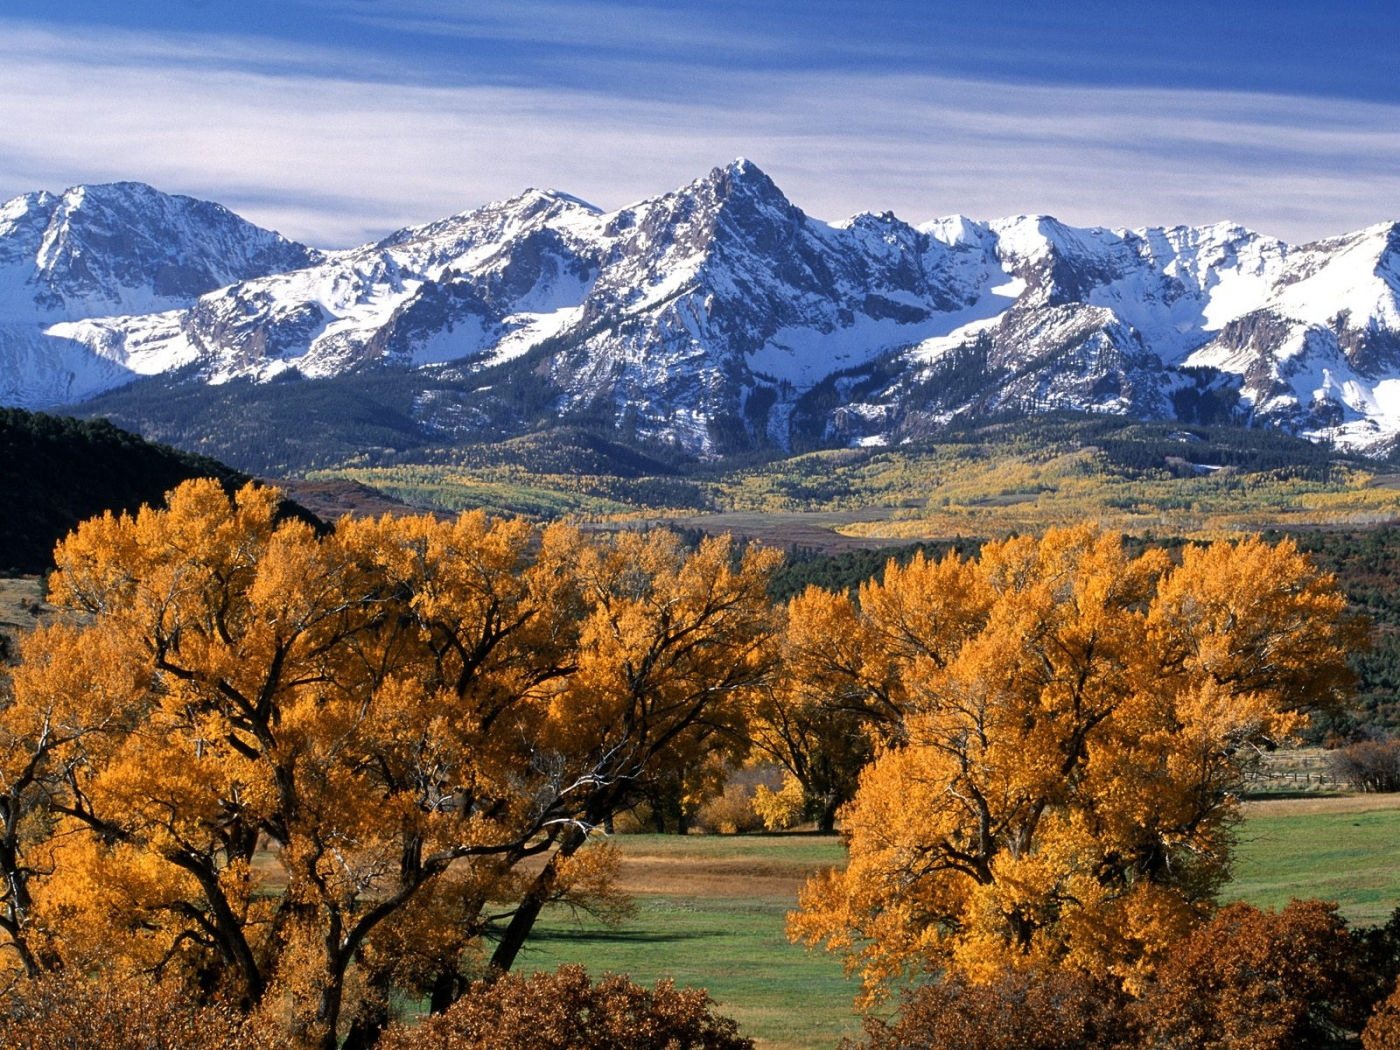 34600 download wallpaper Landscape, Mountains, Autumn screensavers and pictures for free